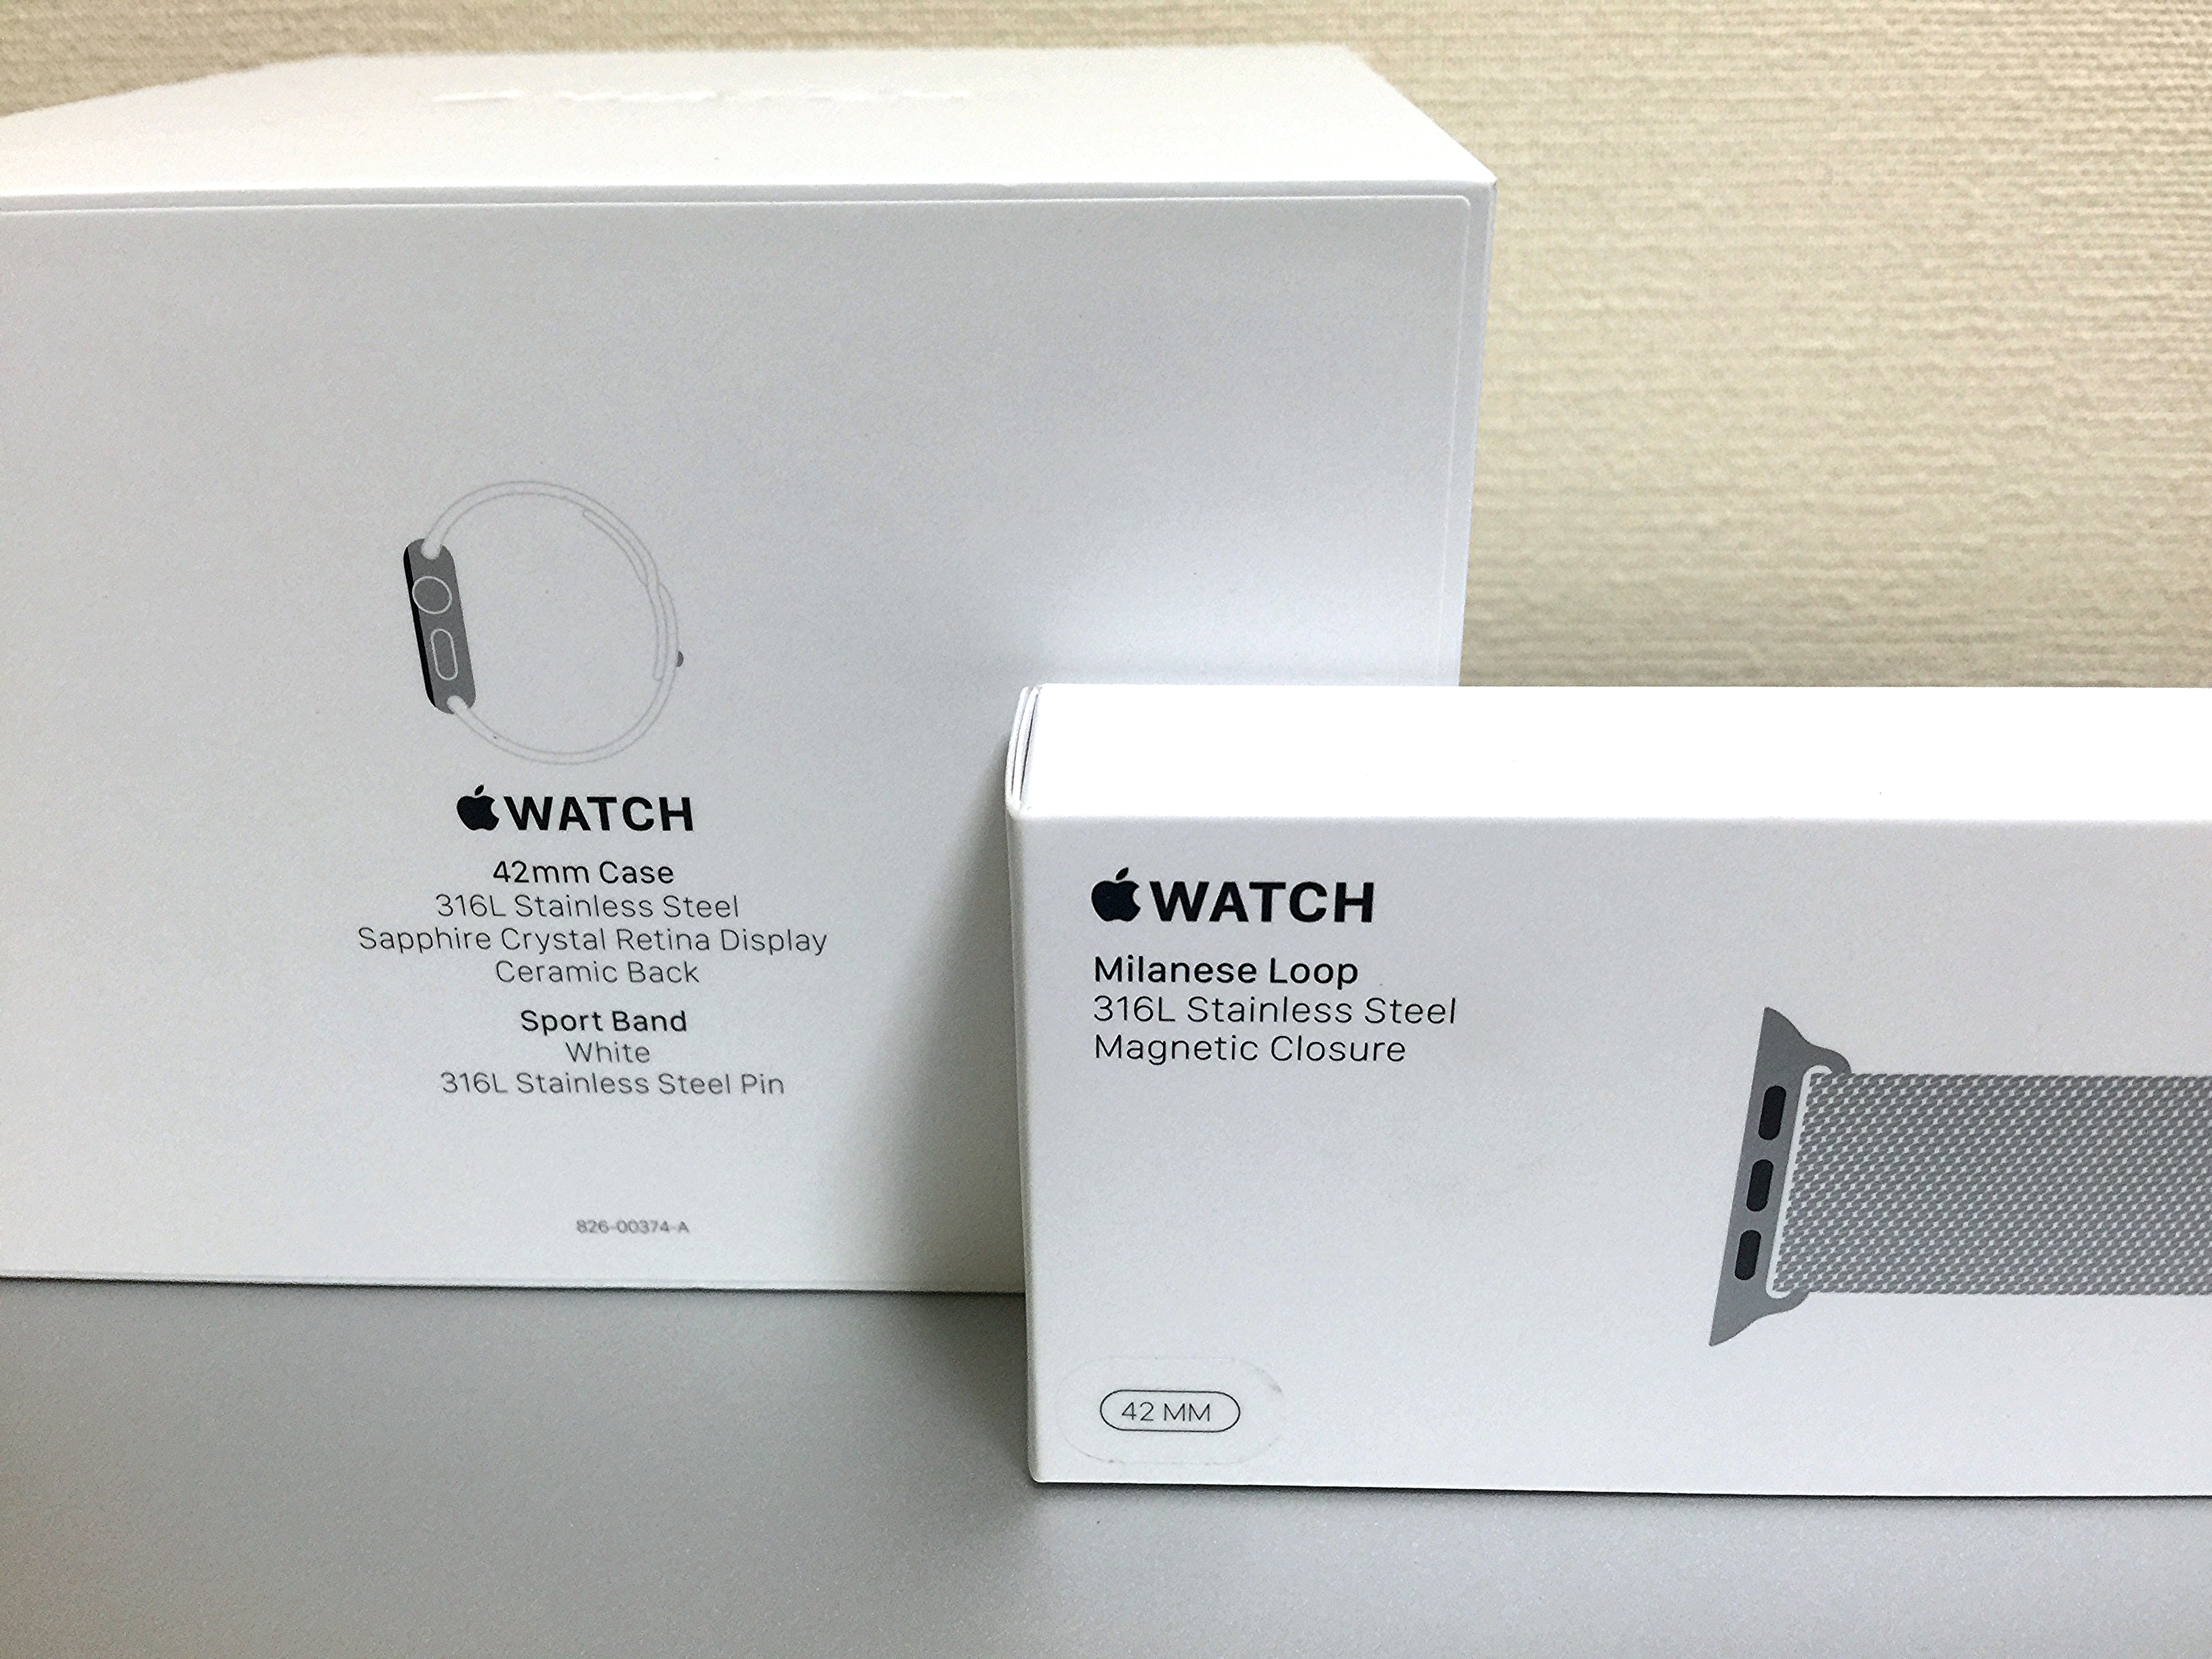 Package of Apple Watch 42mm and Milanese Loop